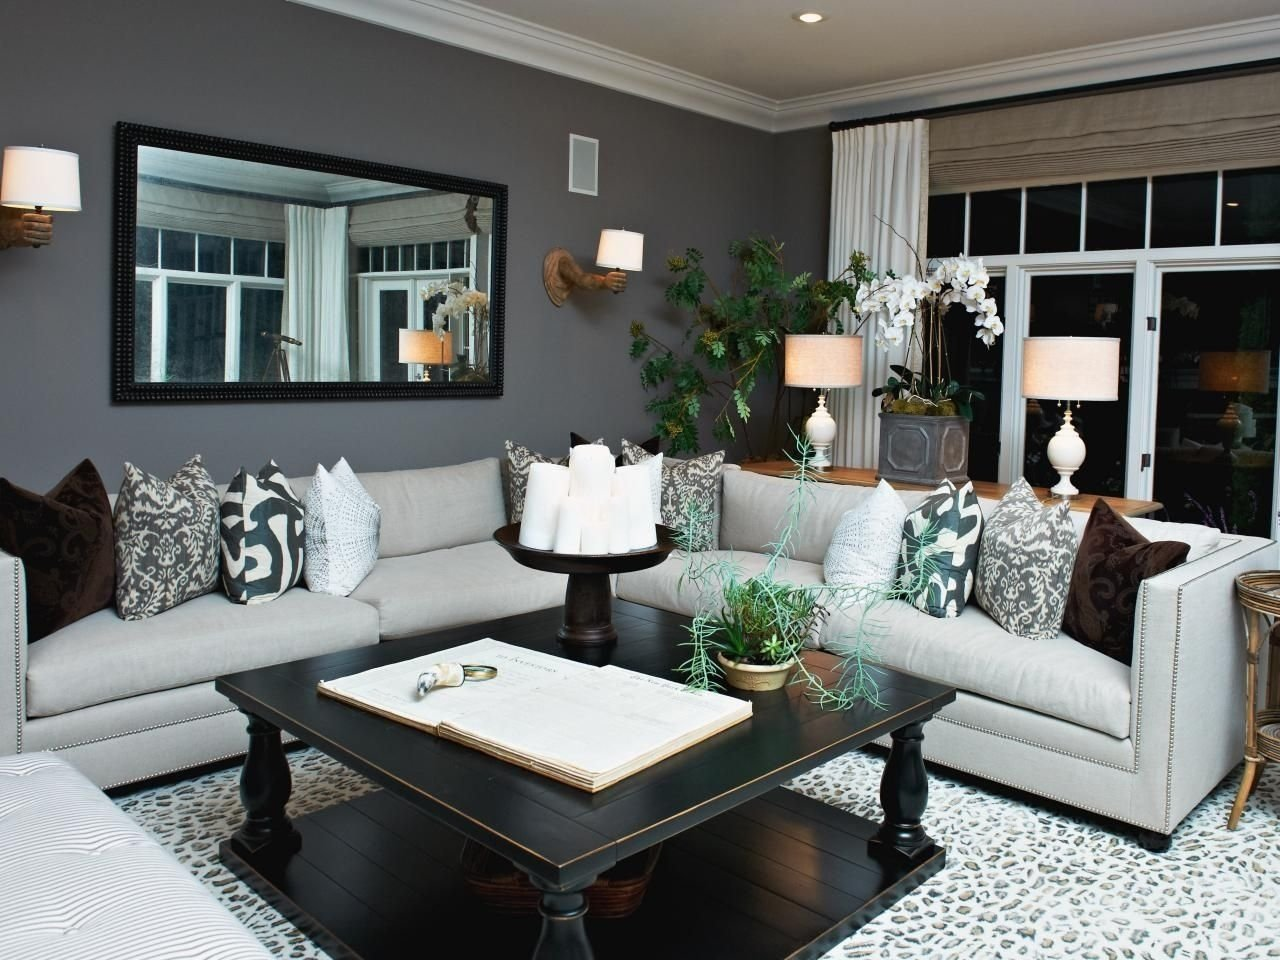 10 cozy living room ideas for your home decoration | cozy living